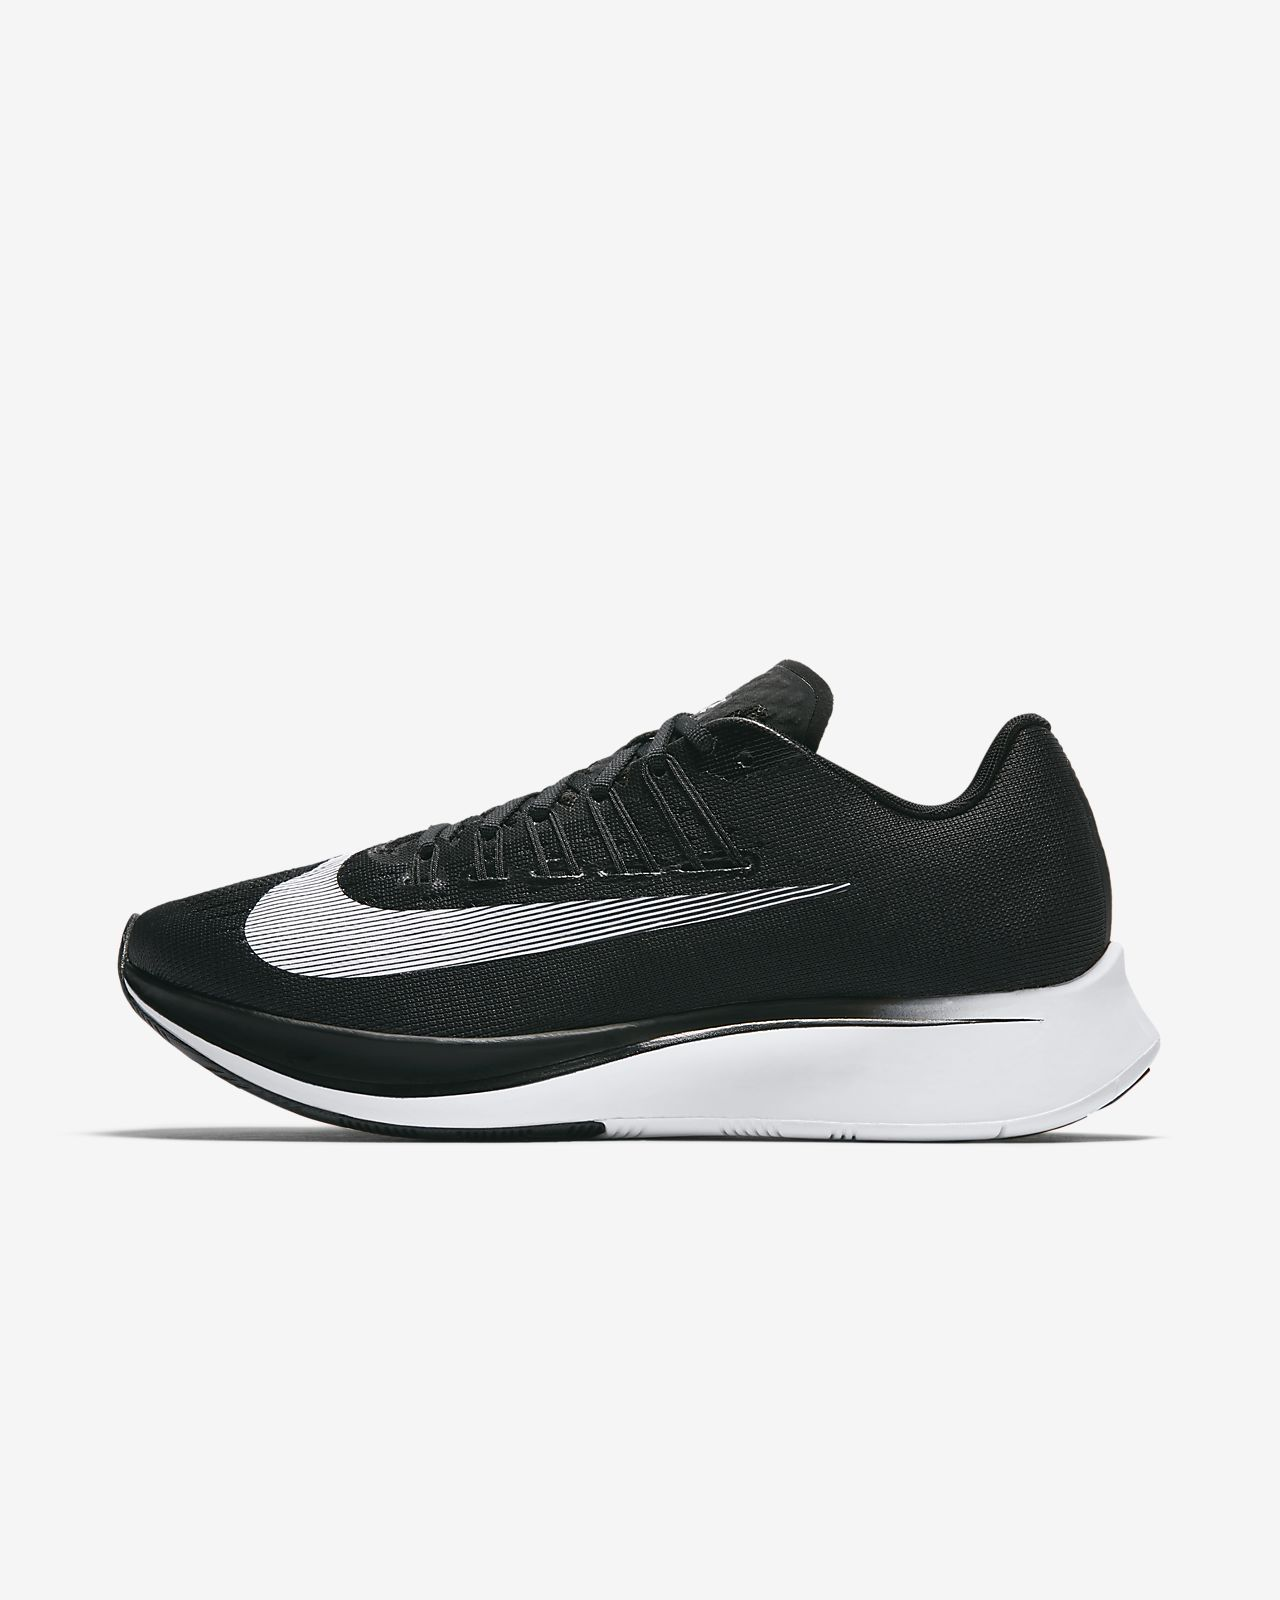 Nike Zoom Fly Womens Running Shoes 8 Black White 897821 001